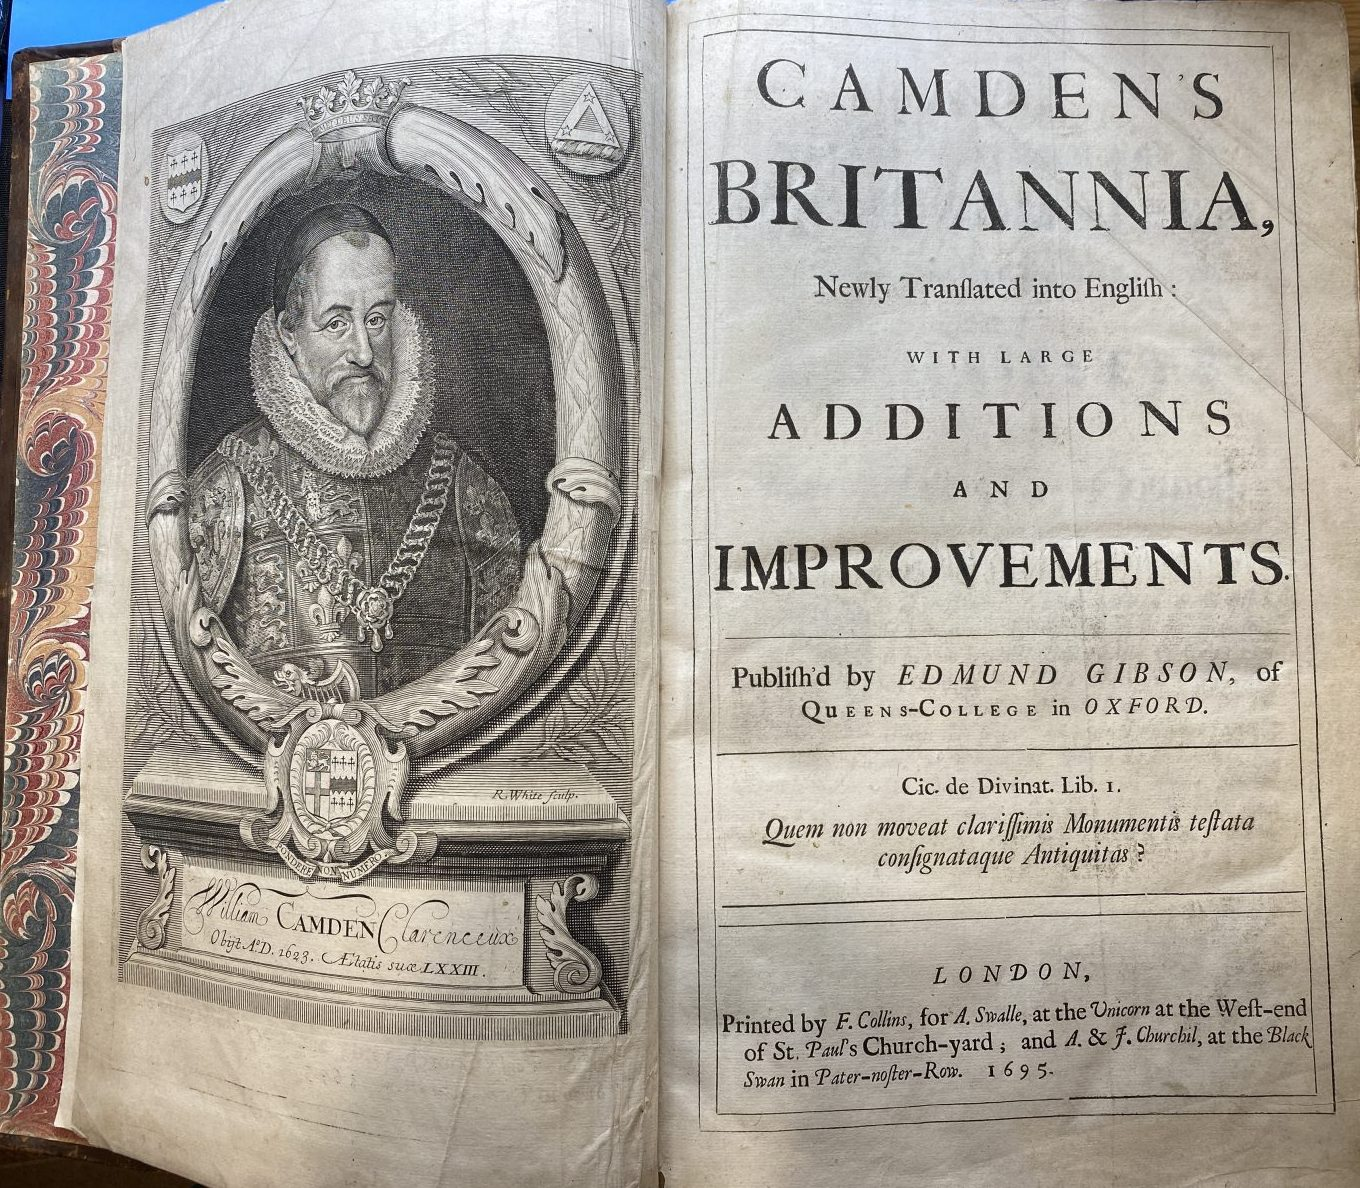 G1 - A good copy of the 1st Gibson edition of Camdens Britannia of 1695, with frontispiece, 50 uncoloured maps by Robert Morden, 8 full-page plates of coins and 1 further full-page plate. This copy is in contemporary panelled calf with a later matching spine with 6 raised bands and a black and gold label. It is in very good clean condition with recent expert repair to corners and end papers. The contents are complete and generally clean with the odd mark or stain. £3,950